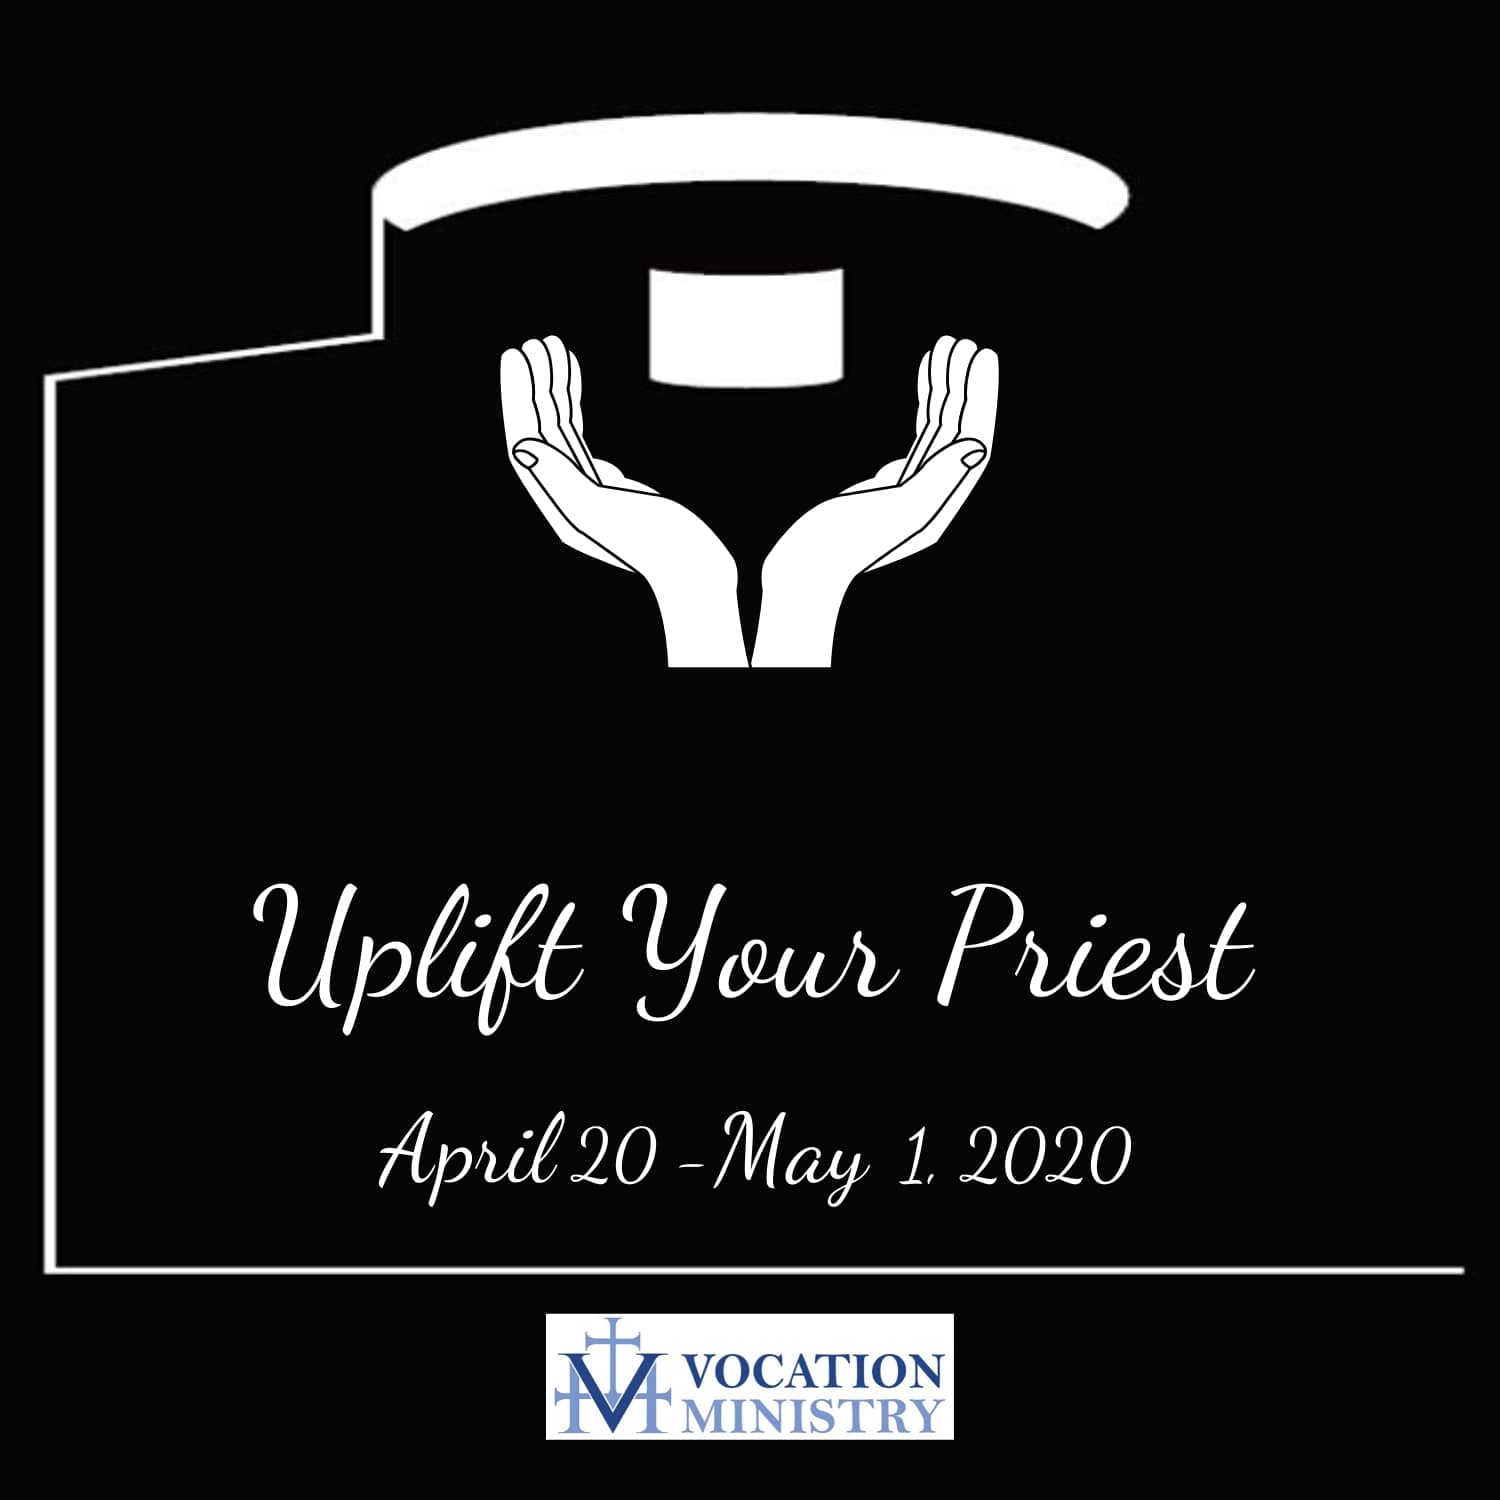 Uplift your priest logo